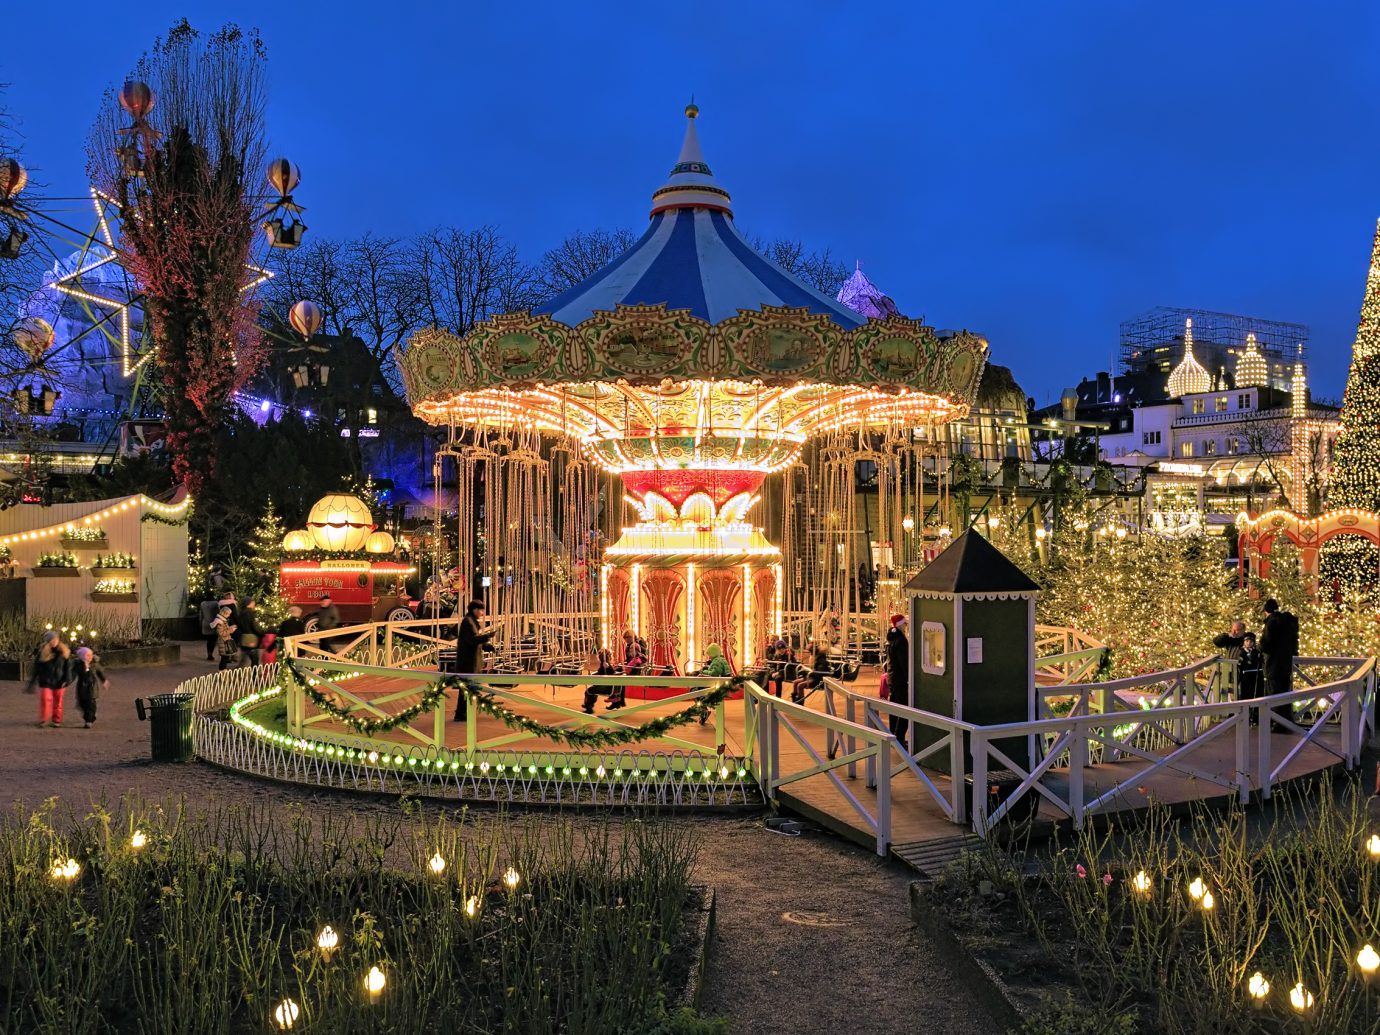 Chain carousel and christmas illumination in Tivoli Gardens. Tivoli Gardens is a famous amusement park and pleasure garden; it is the most-visited theme park in Scandinavia.